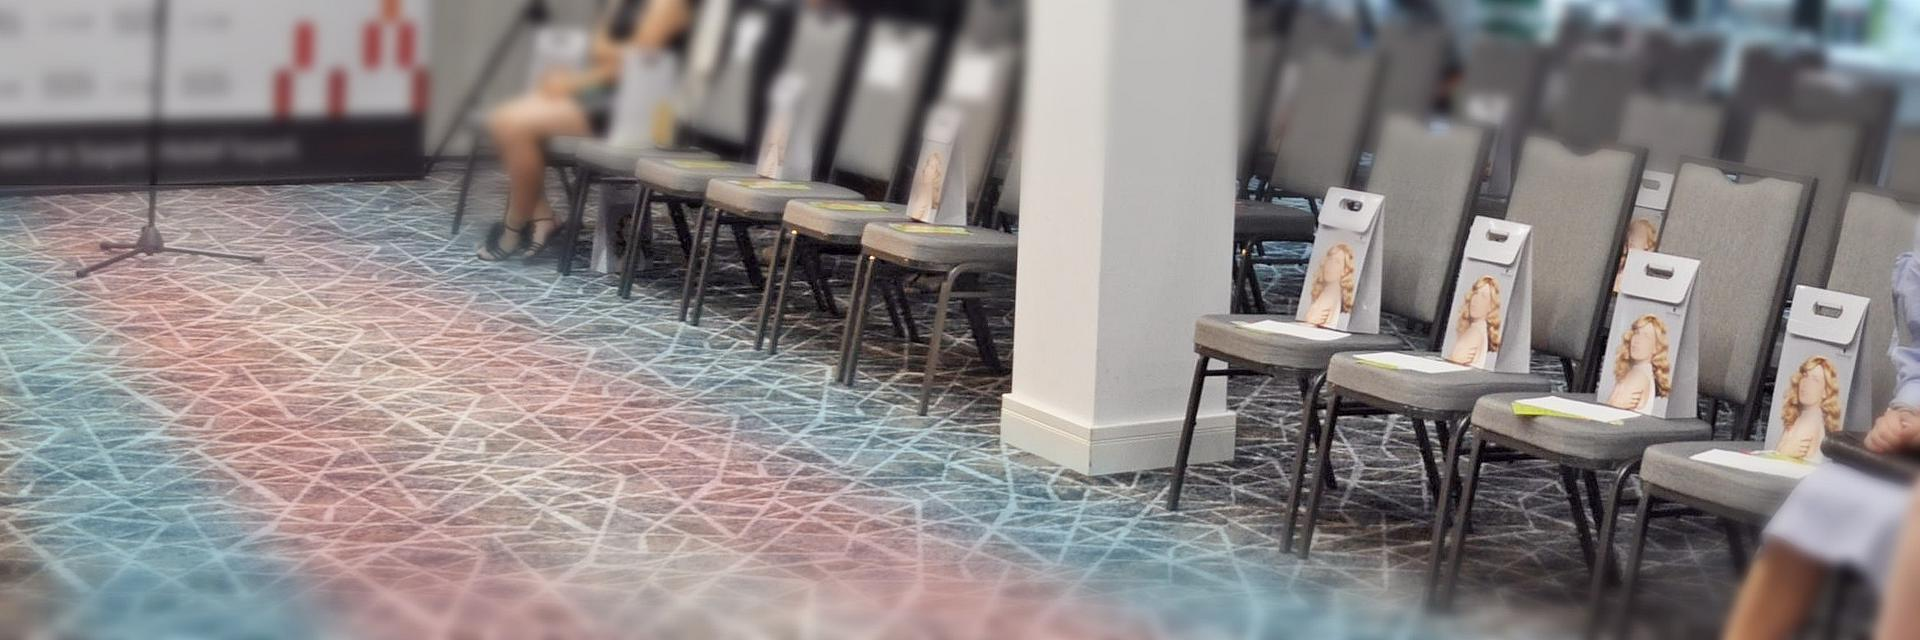 runway with trans flag colors on floor